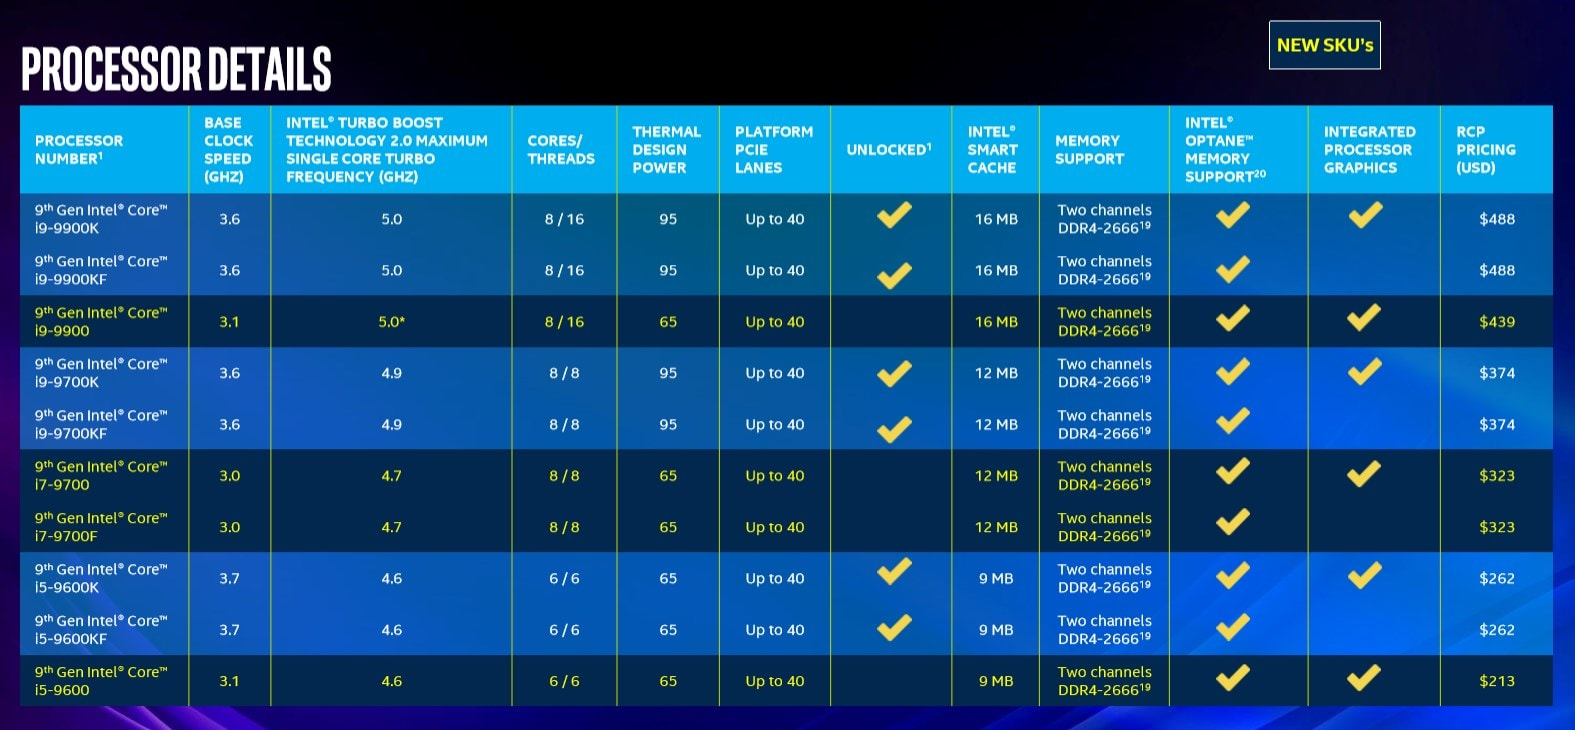 Intel 9th generation CPUs